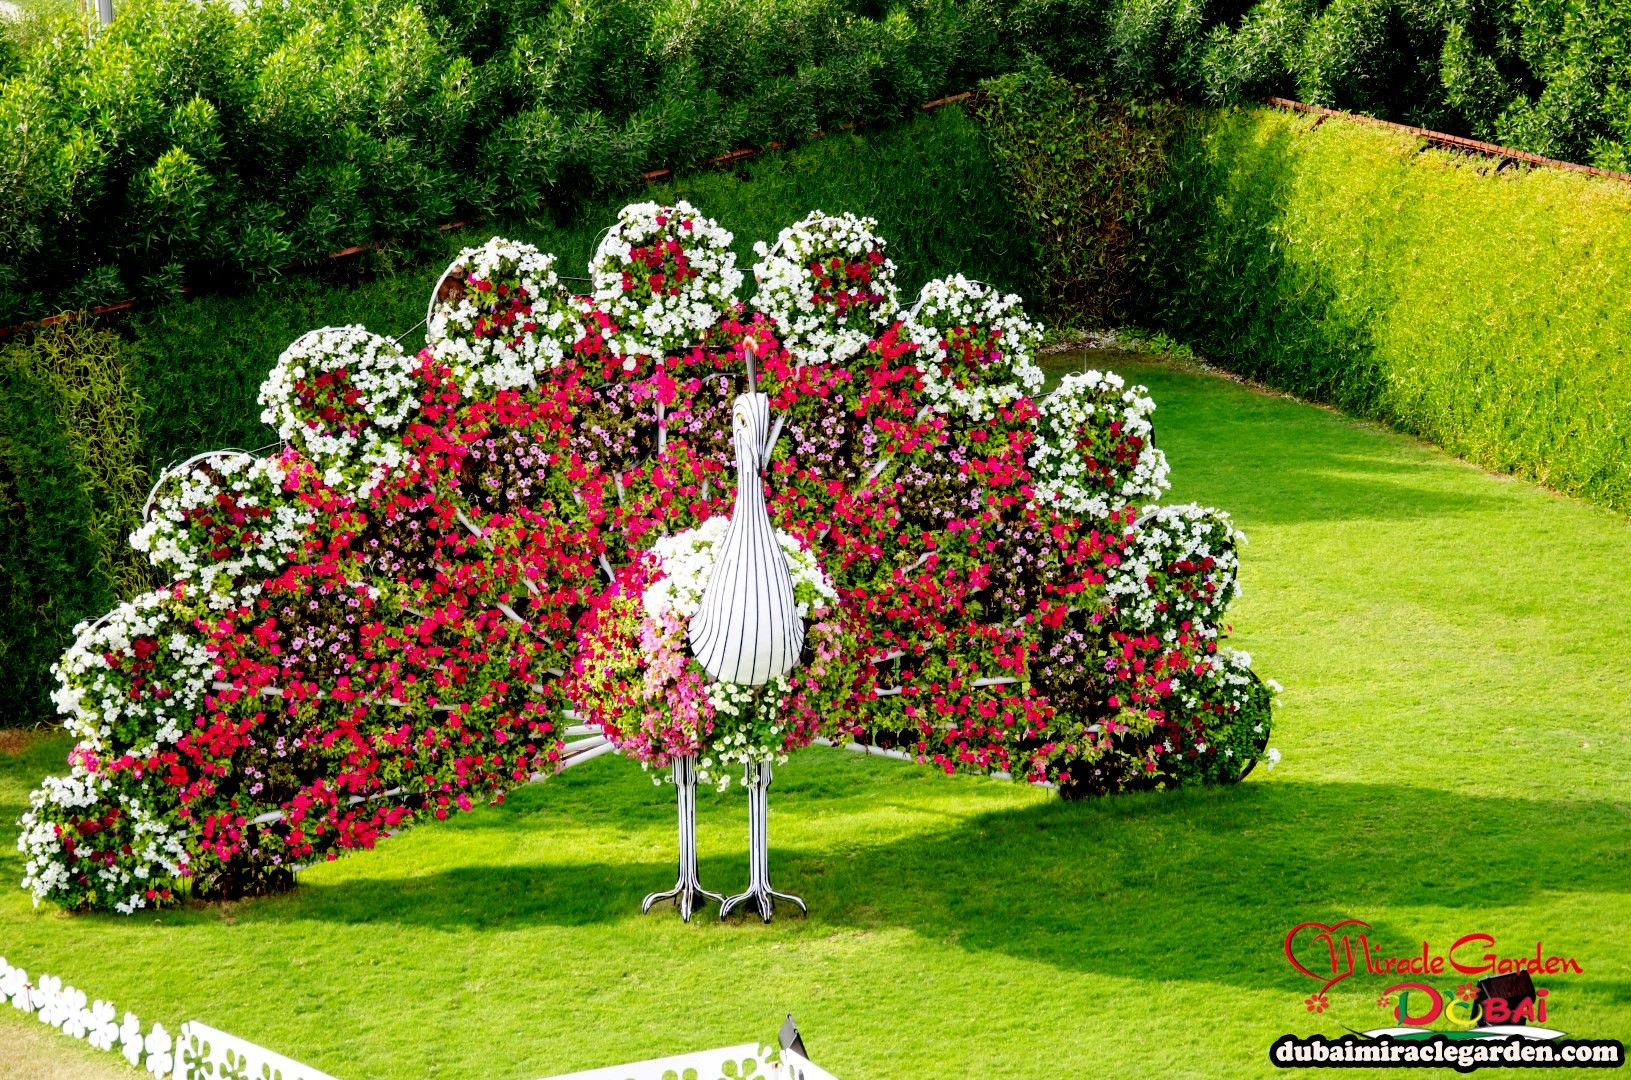 Dubai Miracle Garden The World's Biggest Natural Flower